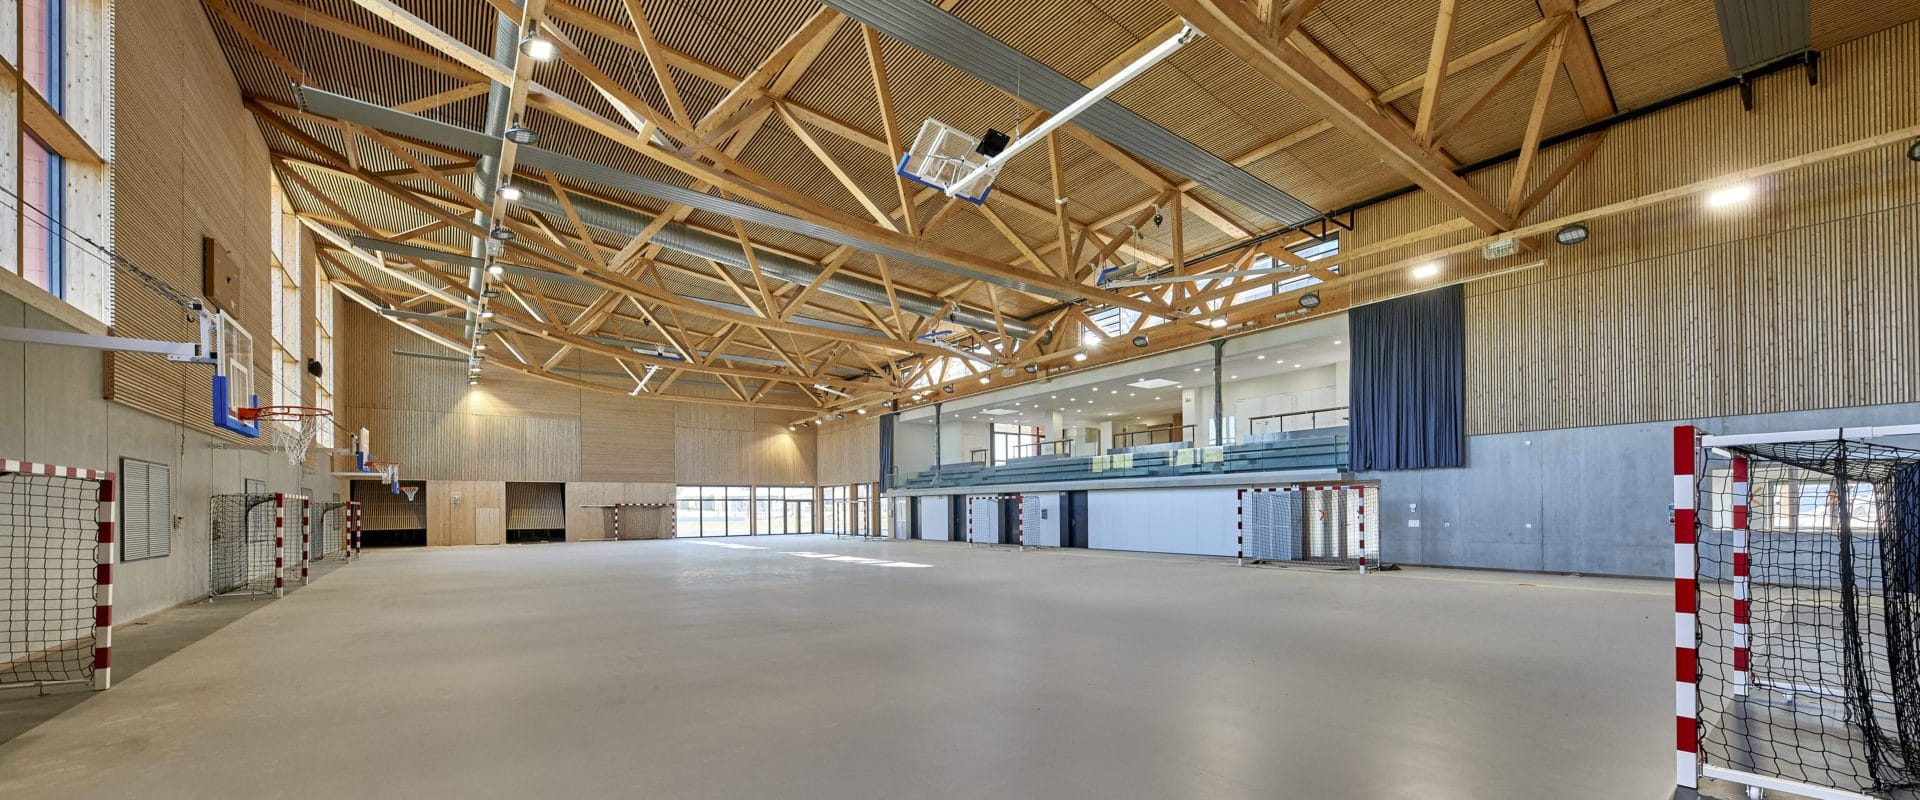 rumilly - école gymnase 28_02